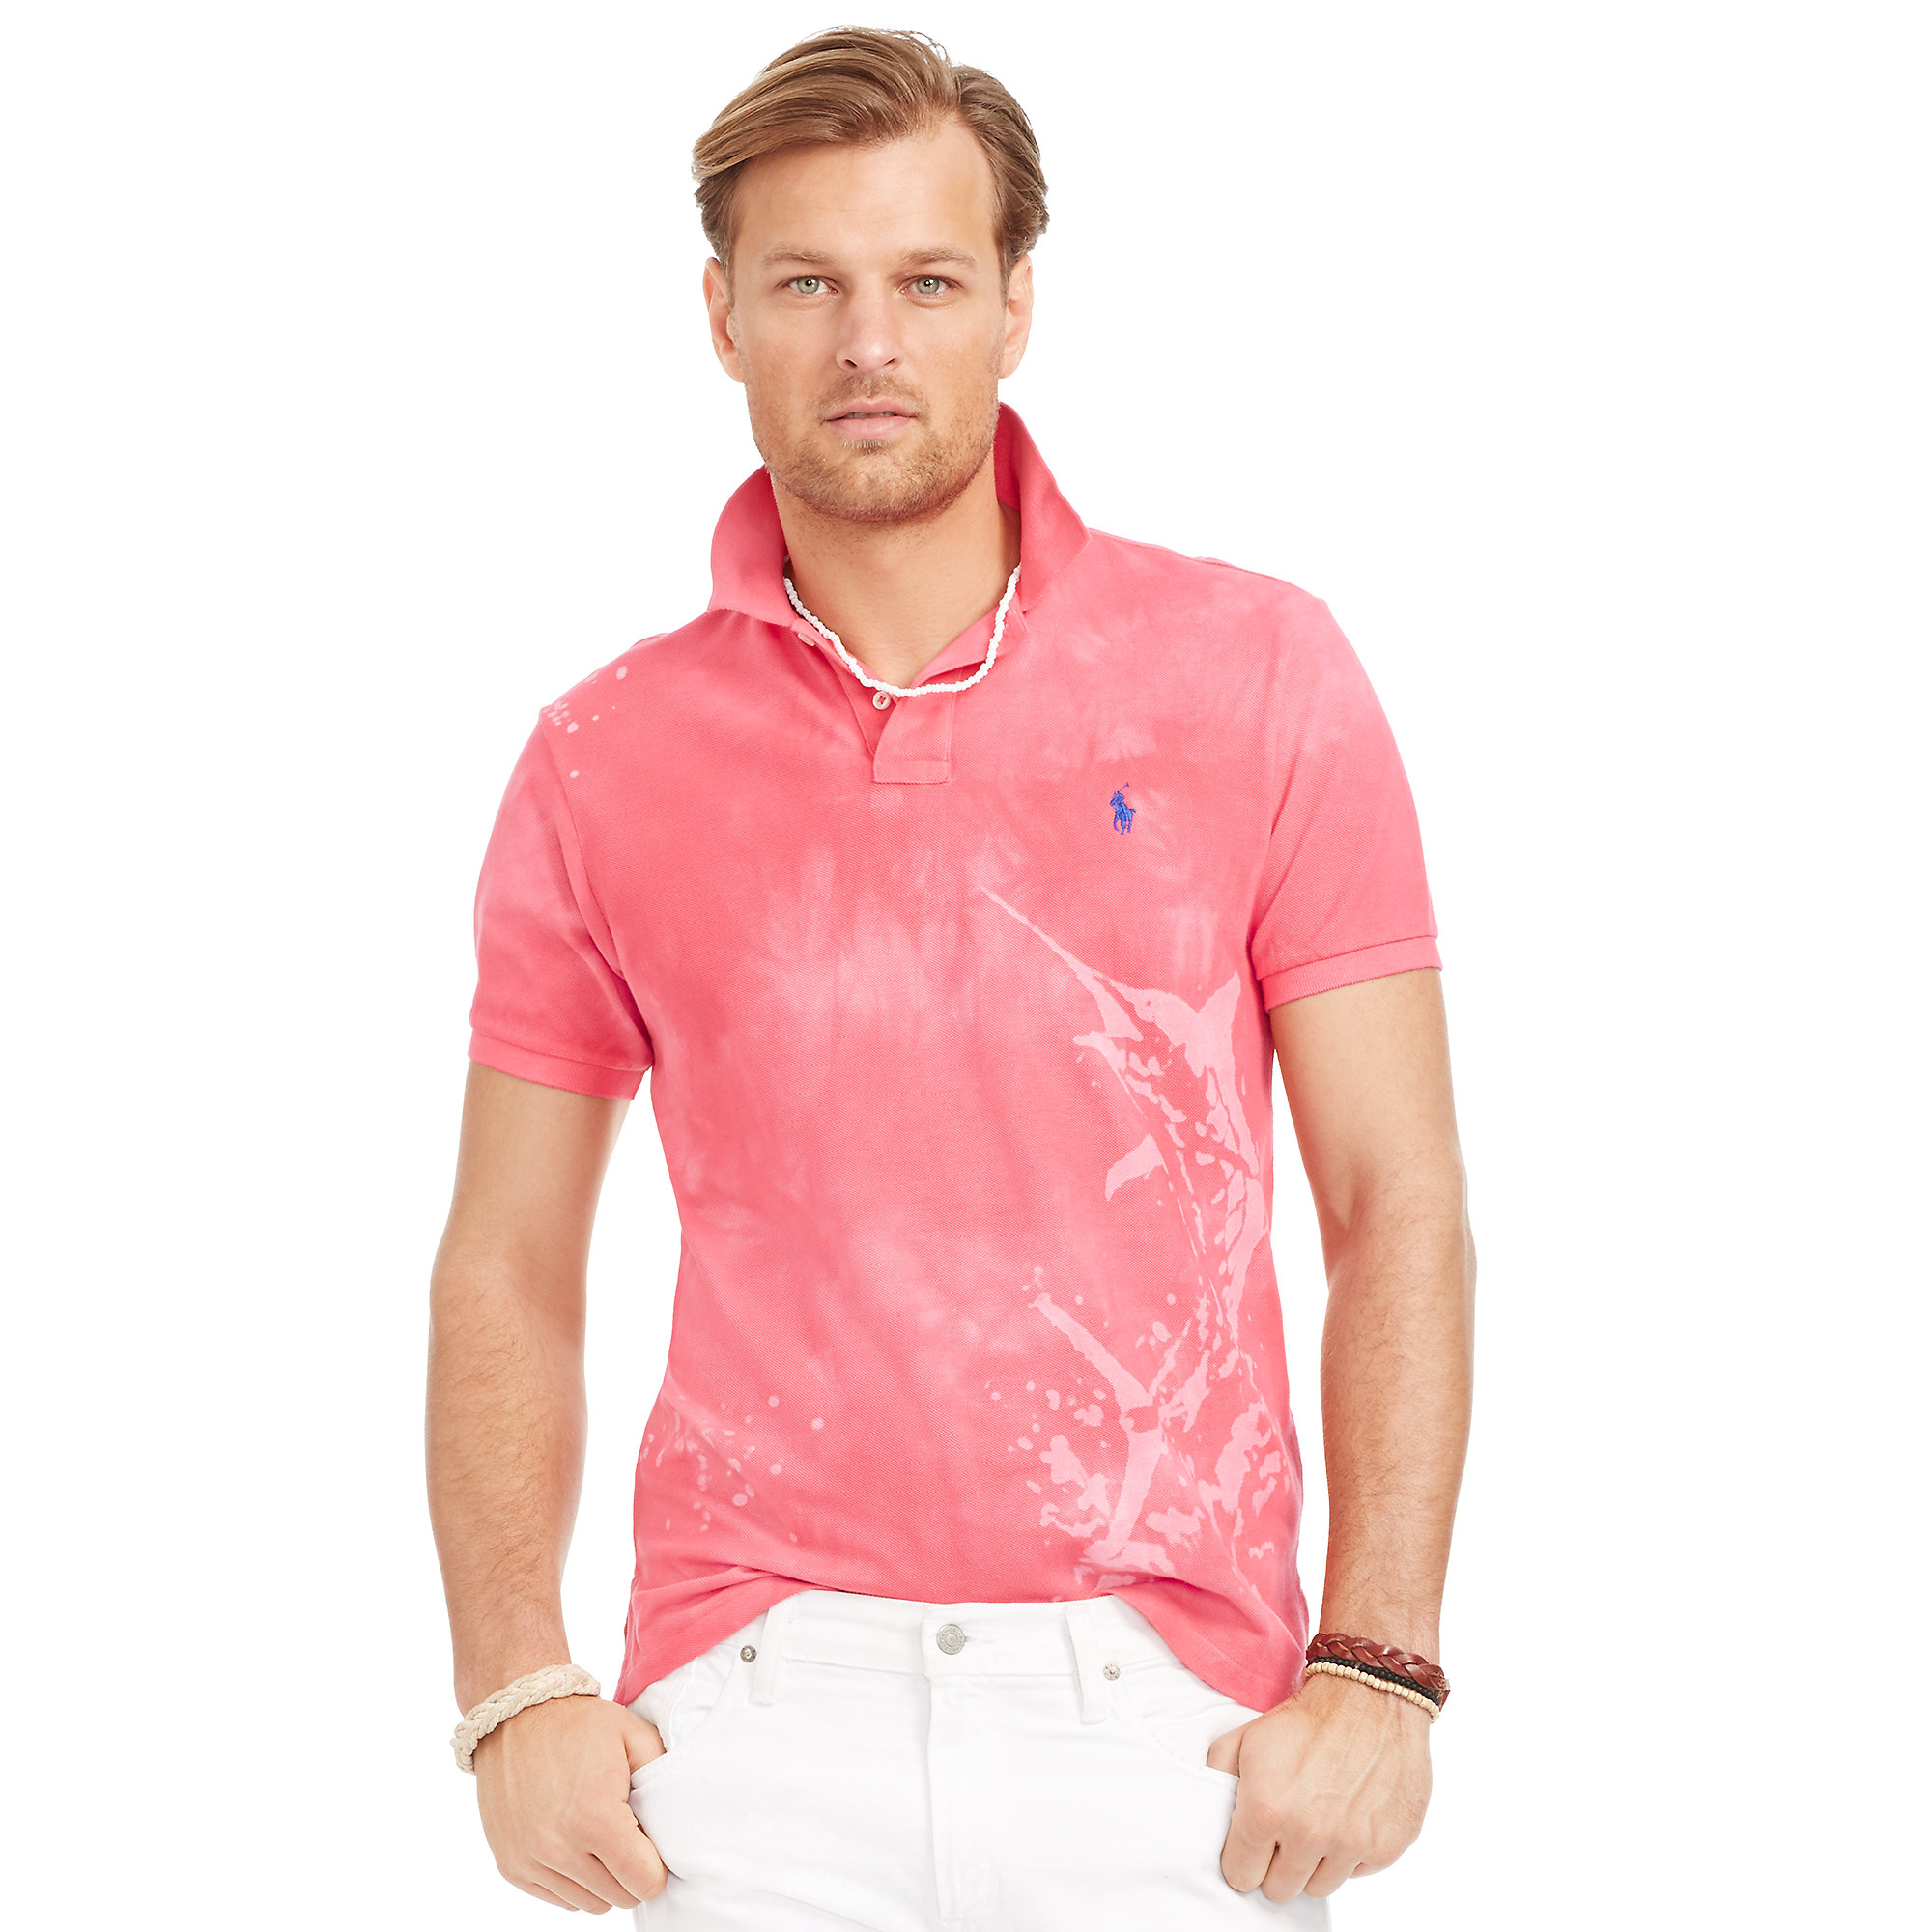 Best prices on Ralph lauren hot pink polo shirt in Men's Shirts online. Visit Bizrate to find the best deals on top brands. Read reviews on Clothing & Accessories merchants and buy with confidence.